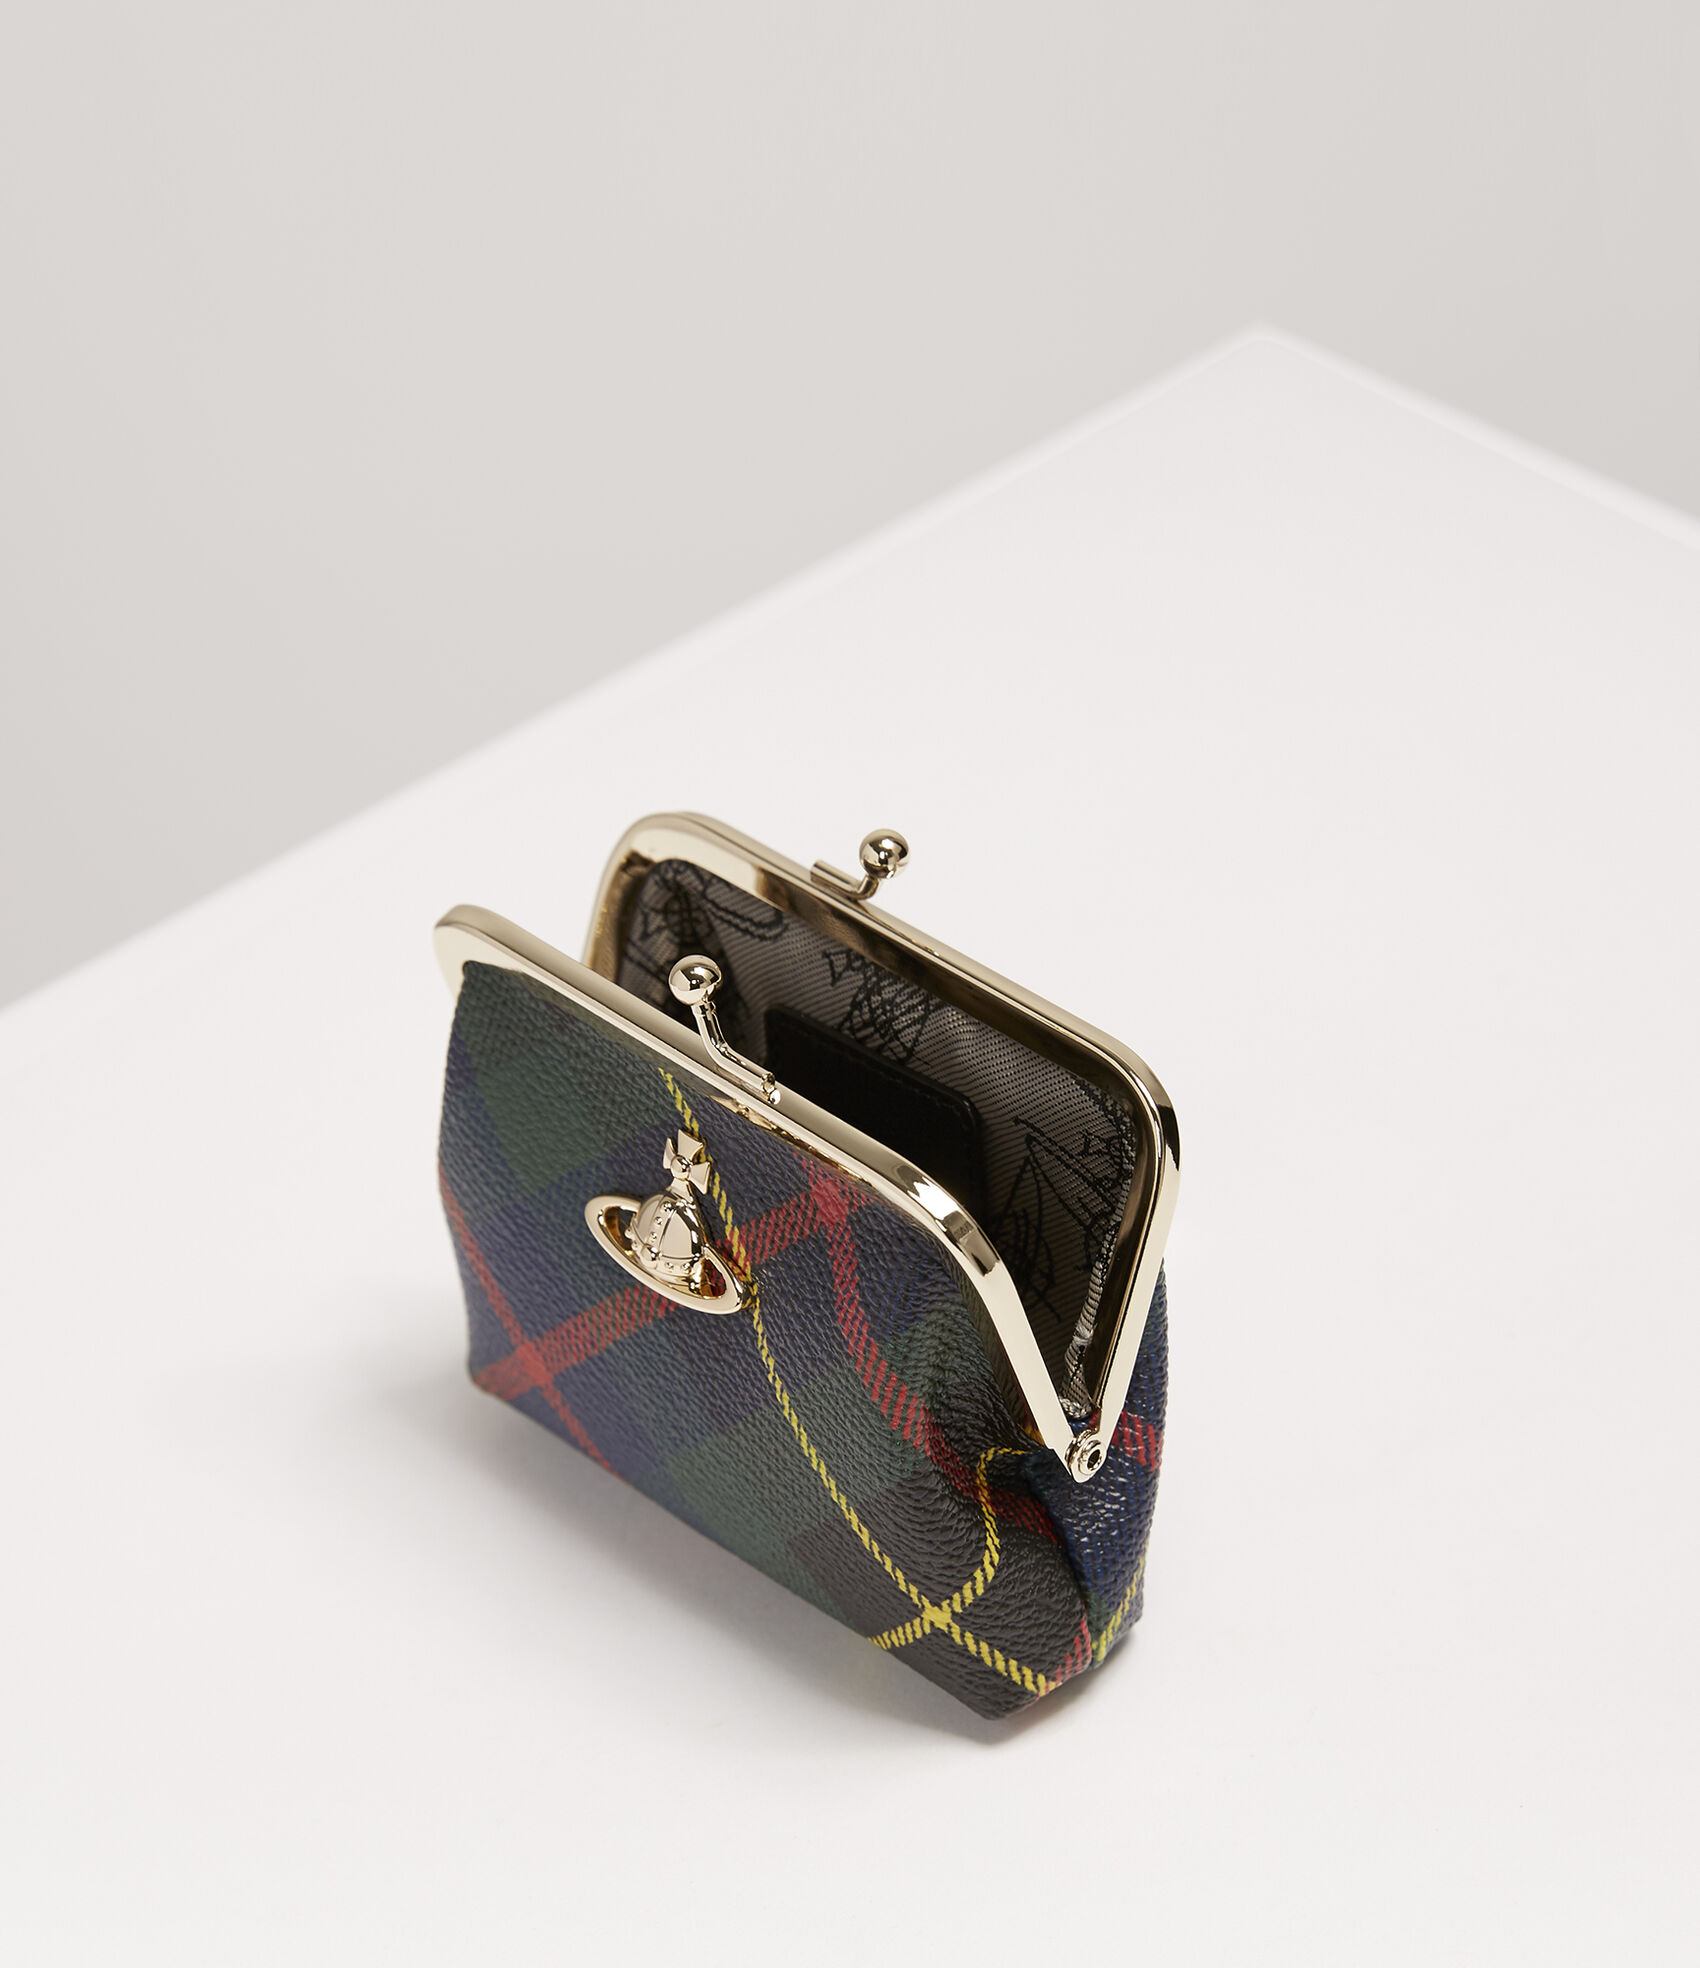 e1be752ac7a Vivienne Westwood Women's Designer Wallets and Purses   Vivienne Westwood -  Derby Frame Coin Purse Hunting Tartan